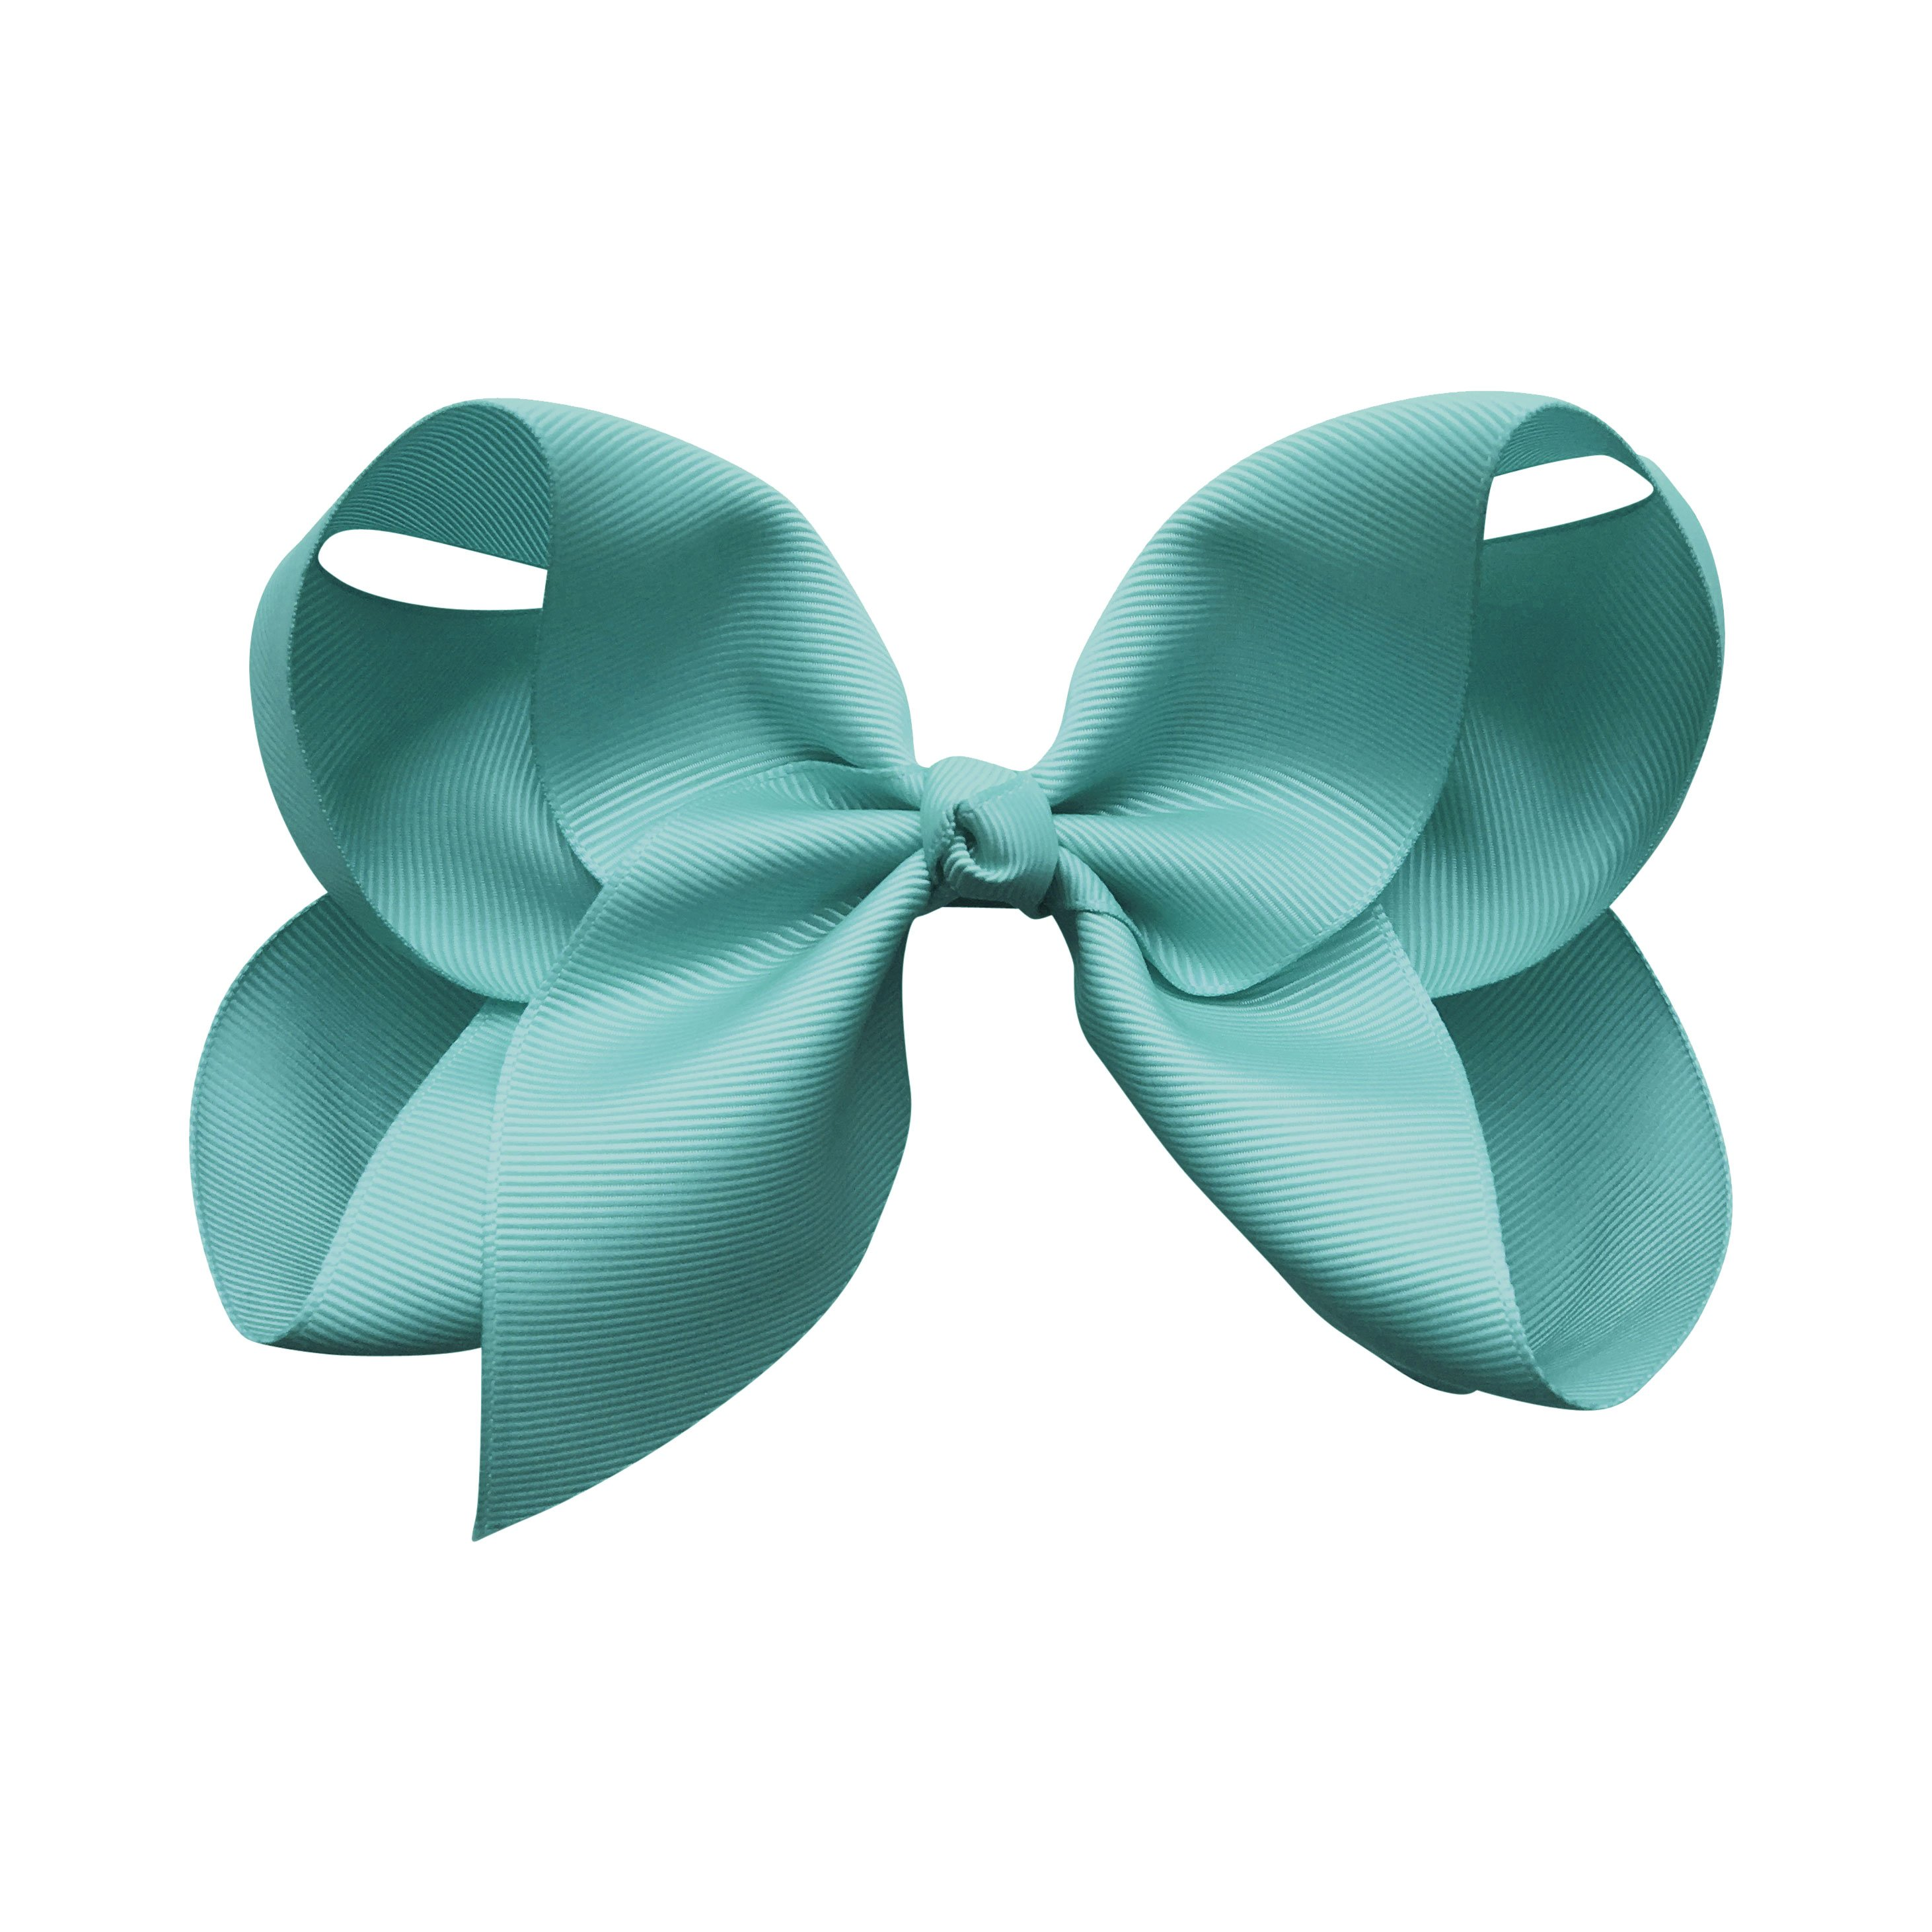 Image of Jumbo Boutique Bow - alligator clip - nile blue